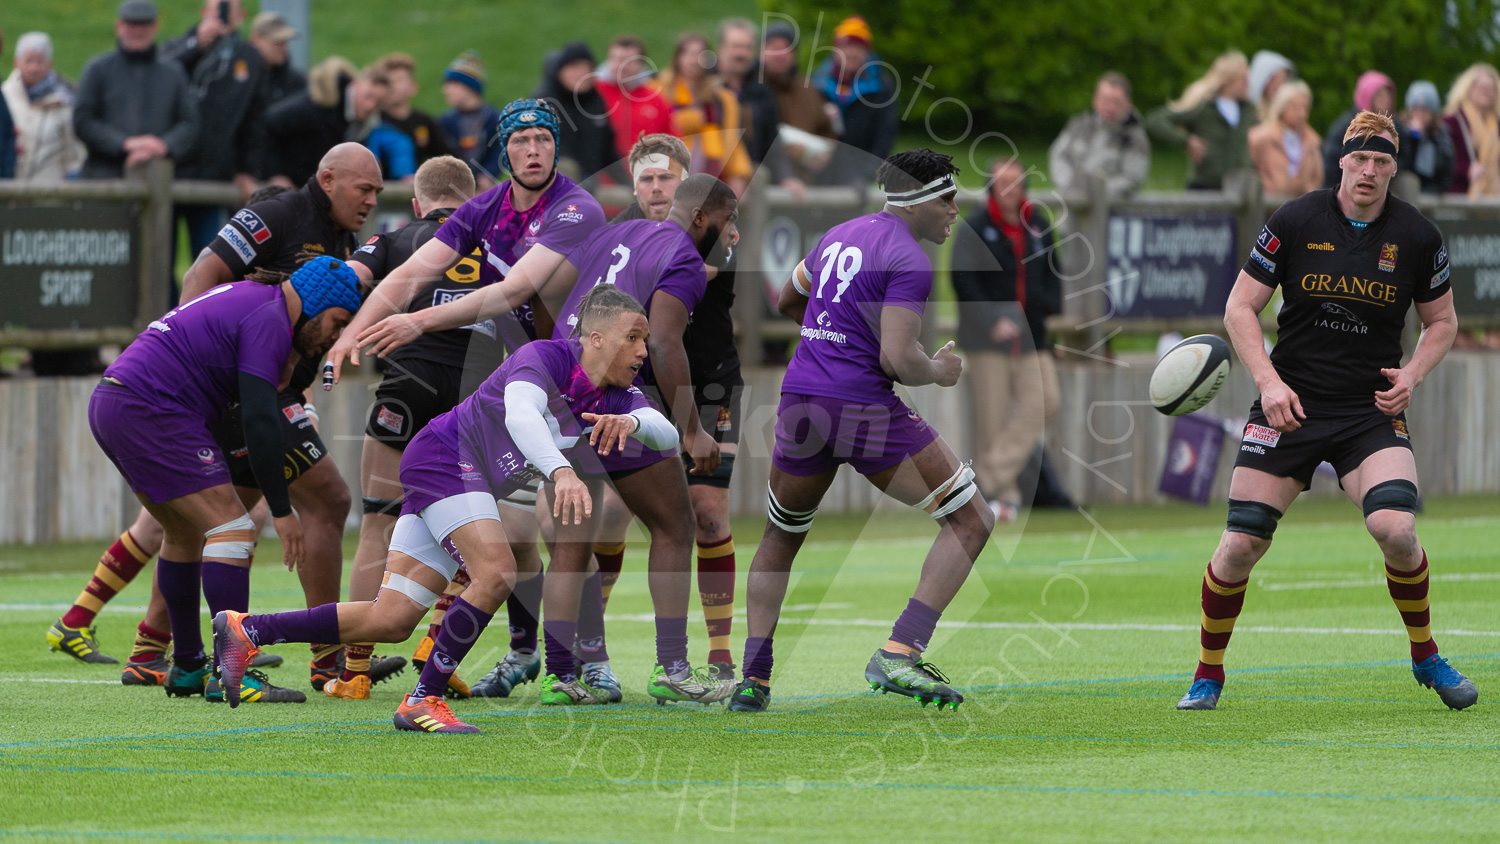 20190427 Loughborough vs Ampthill 1st XV #6312